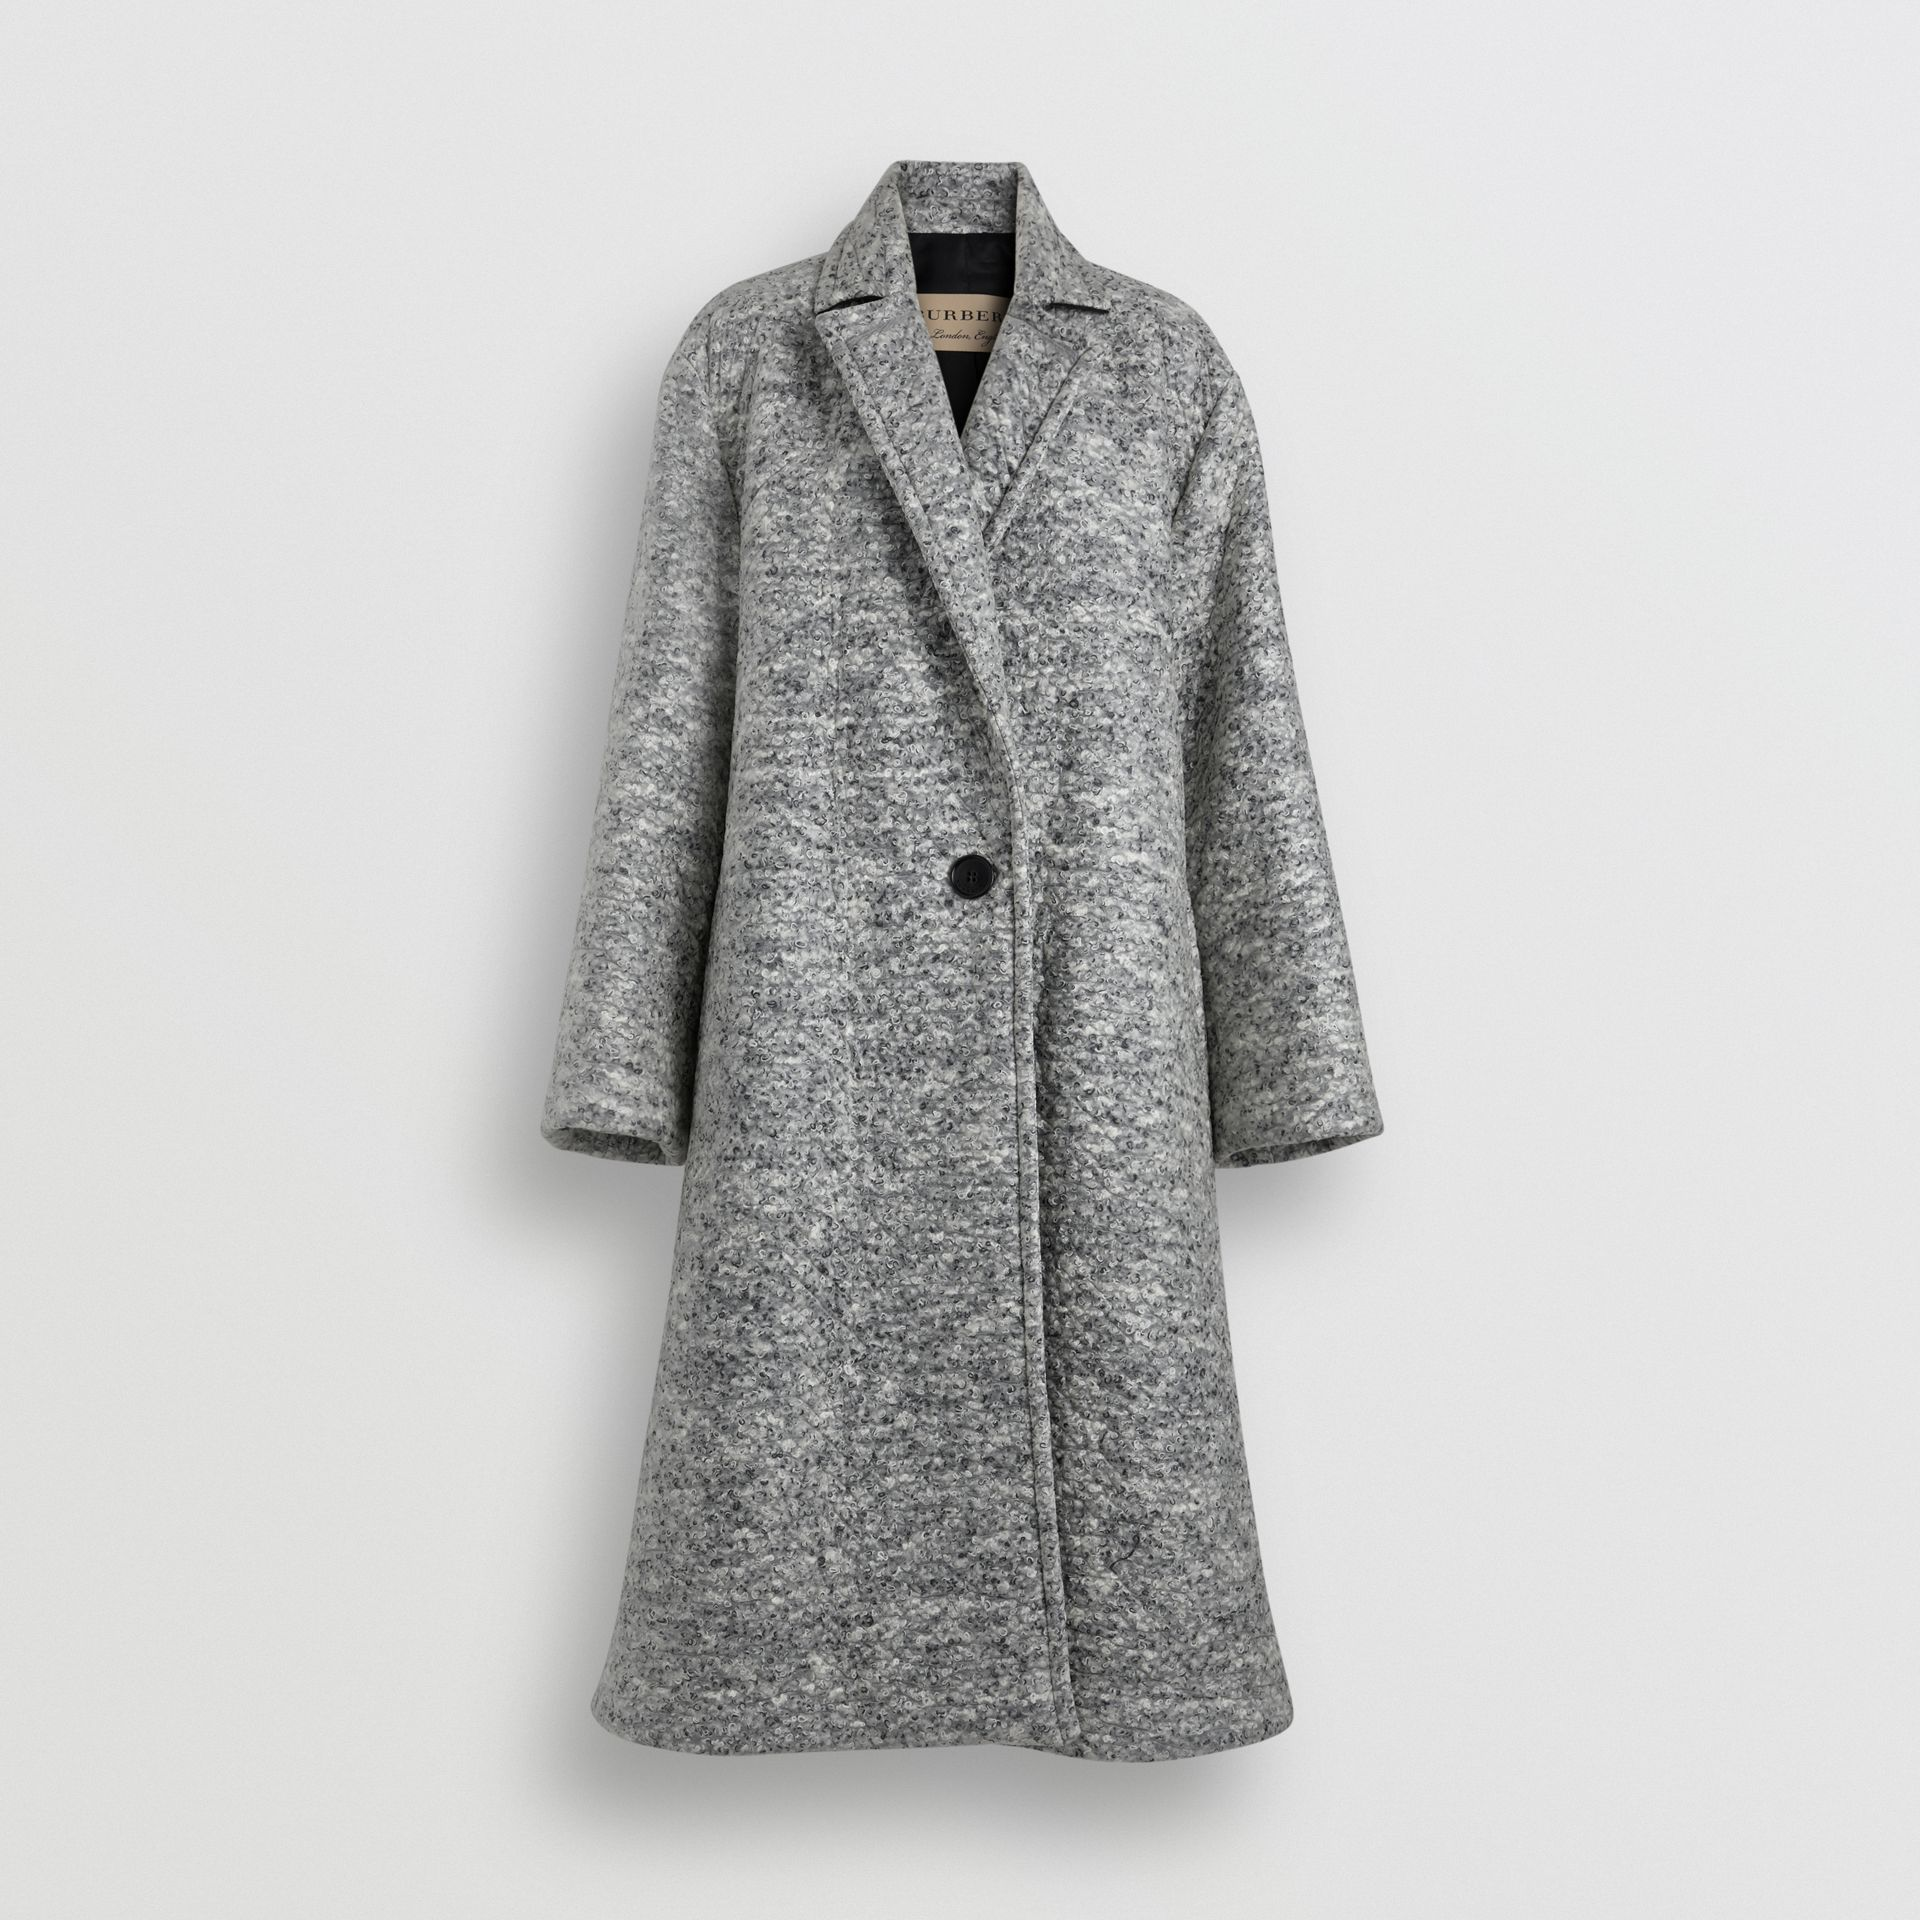 Laminated Cashmere Wool Blend A-line Coat in Grey Melange - Women | Burberry United Kingdom - gallery image 3